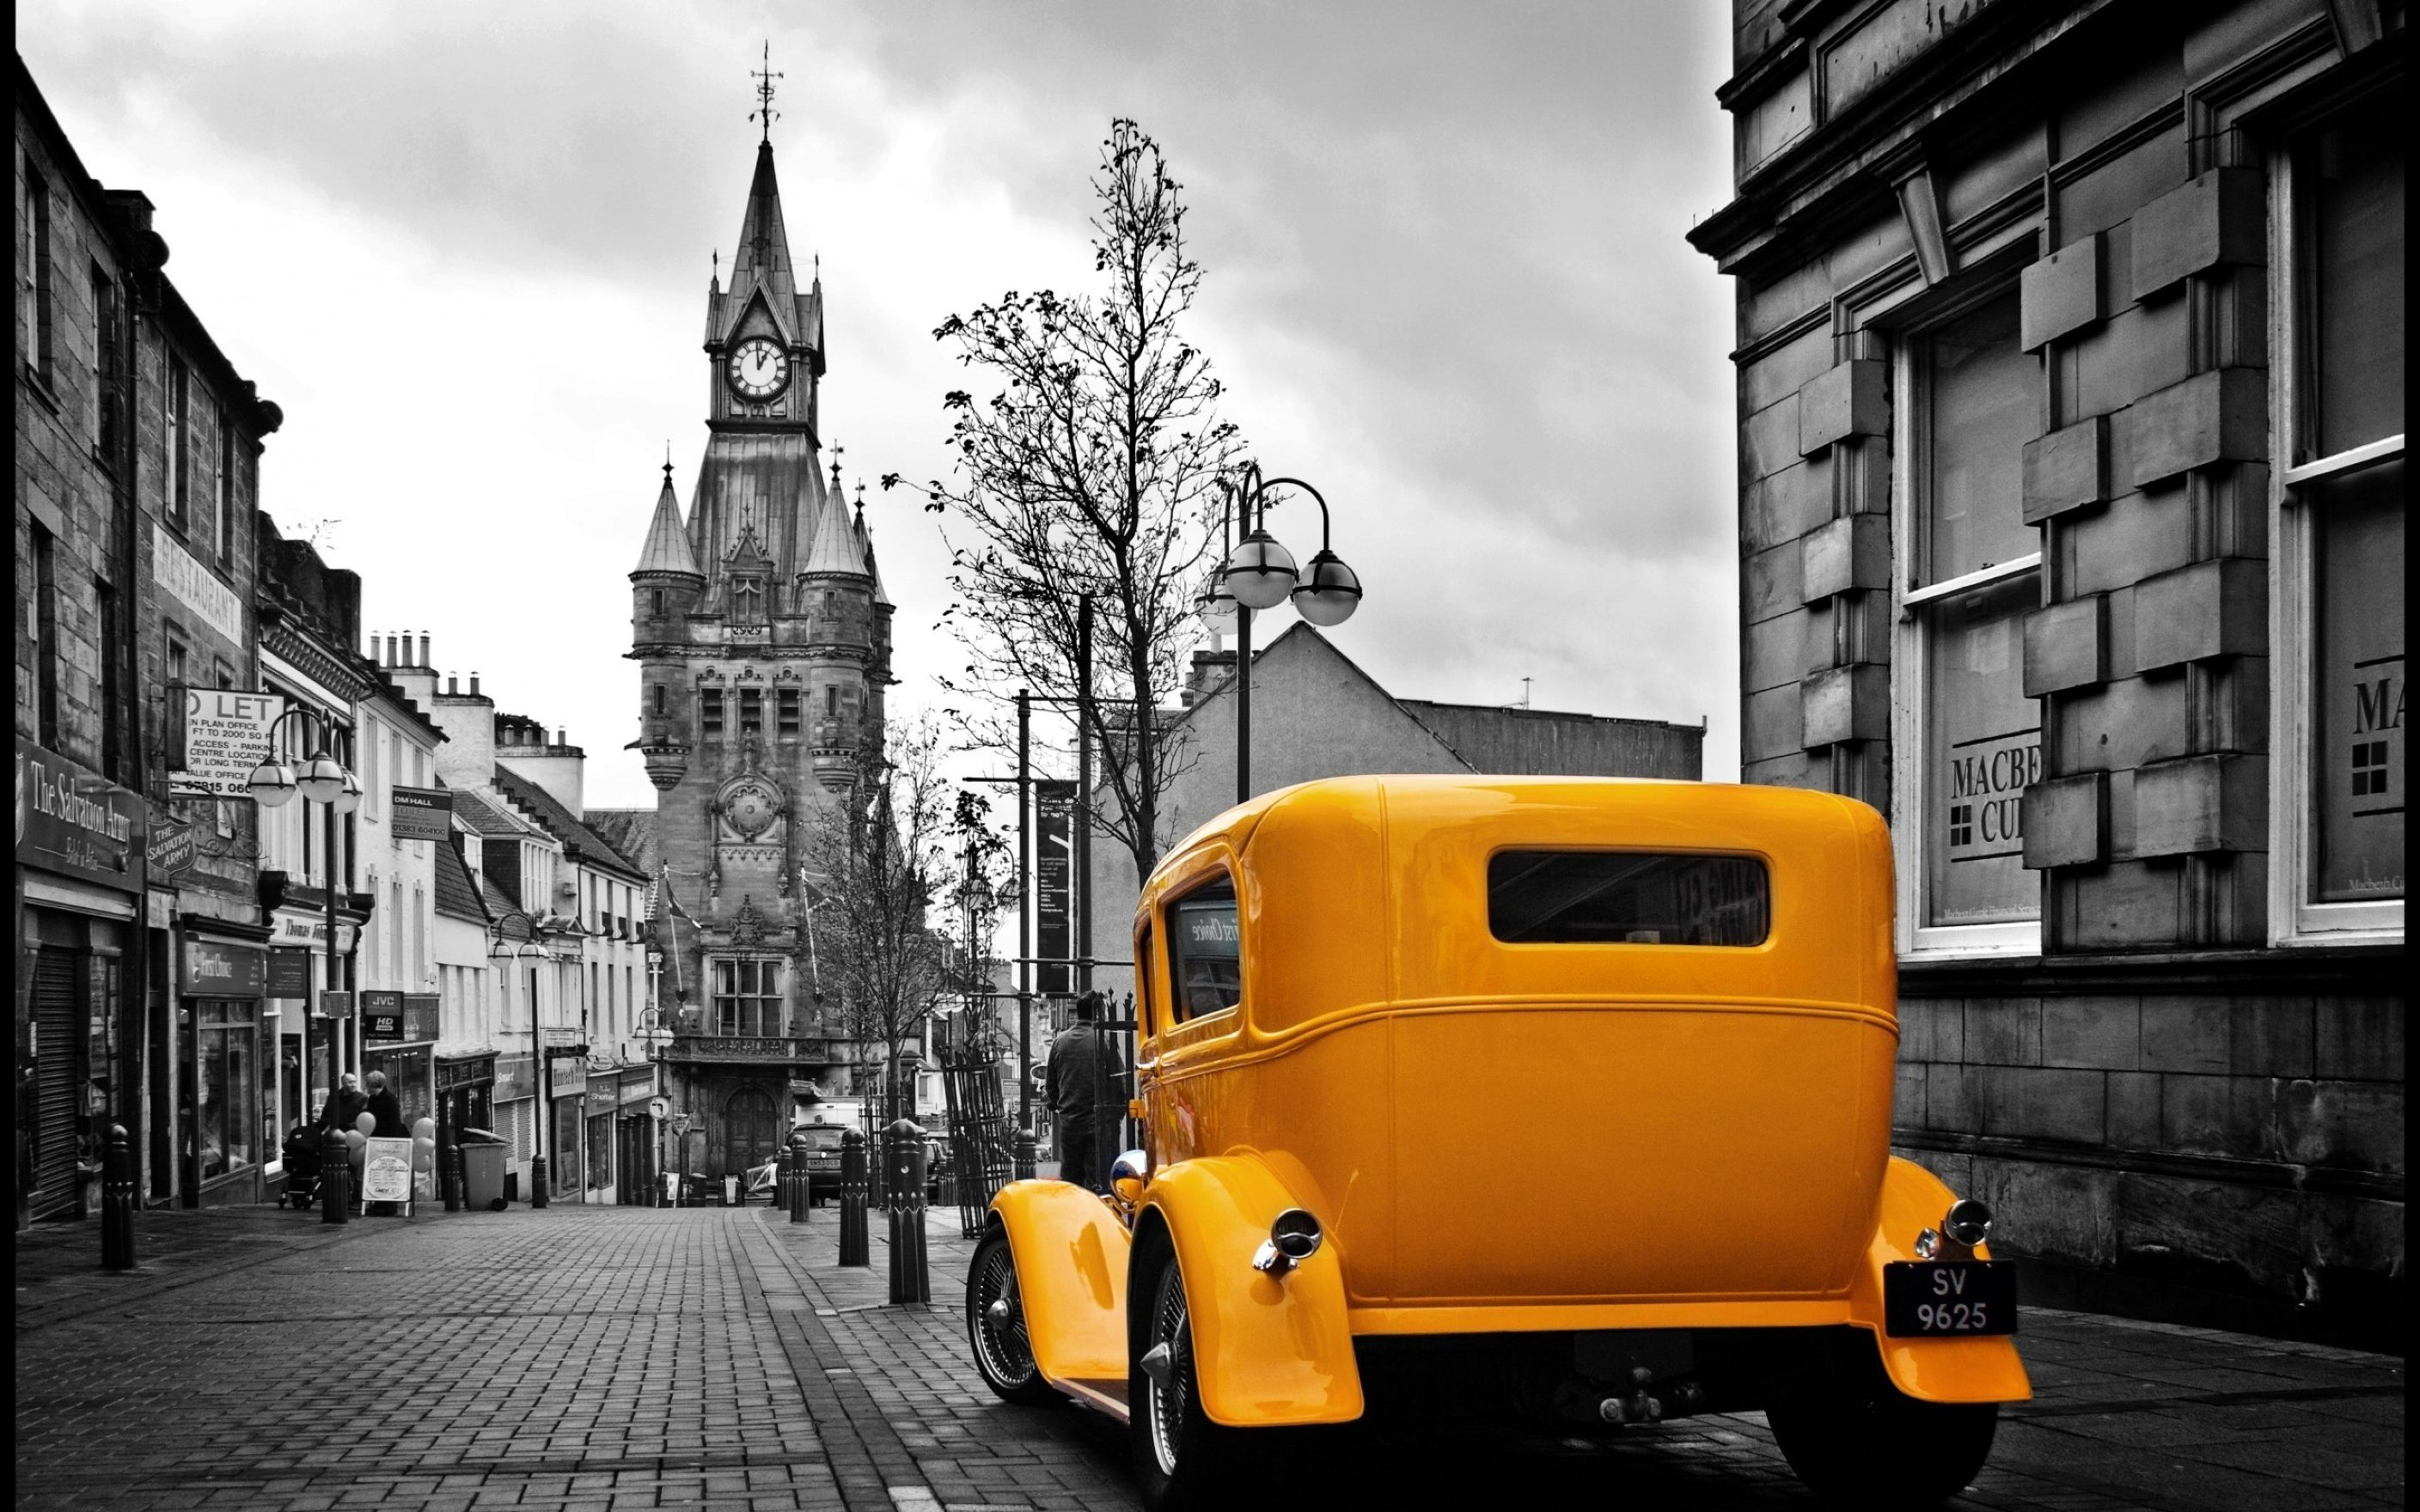 Download free HD Car Vintage Retro City Wallpaper, image